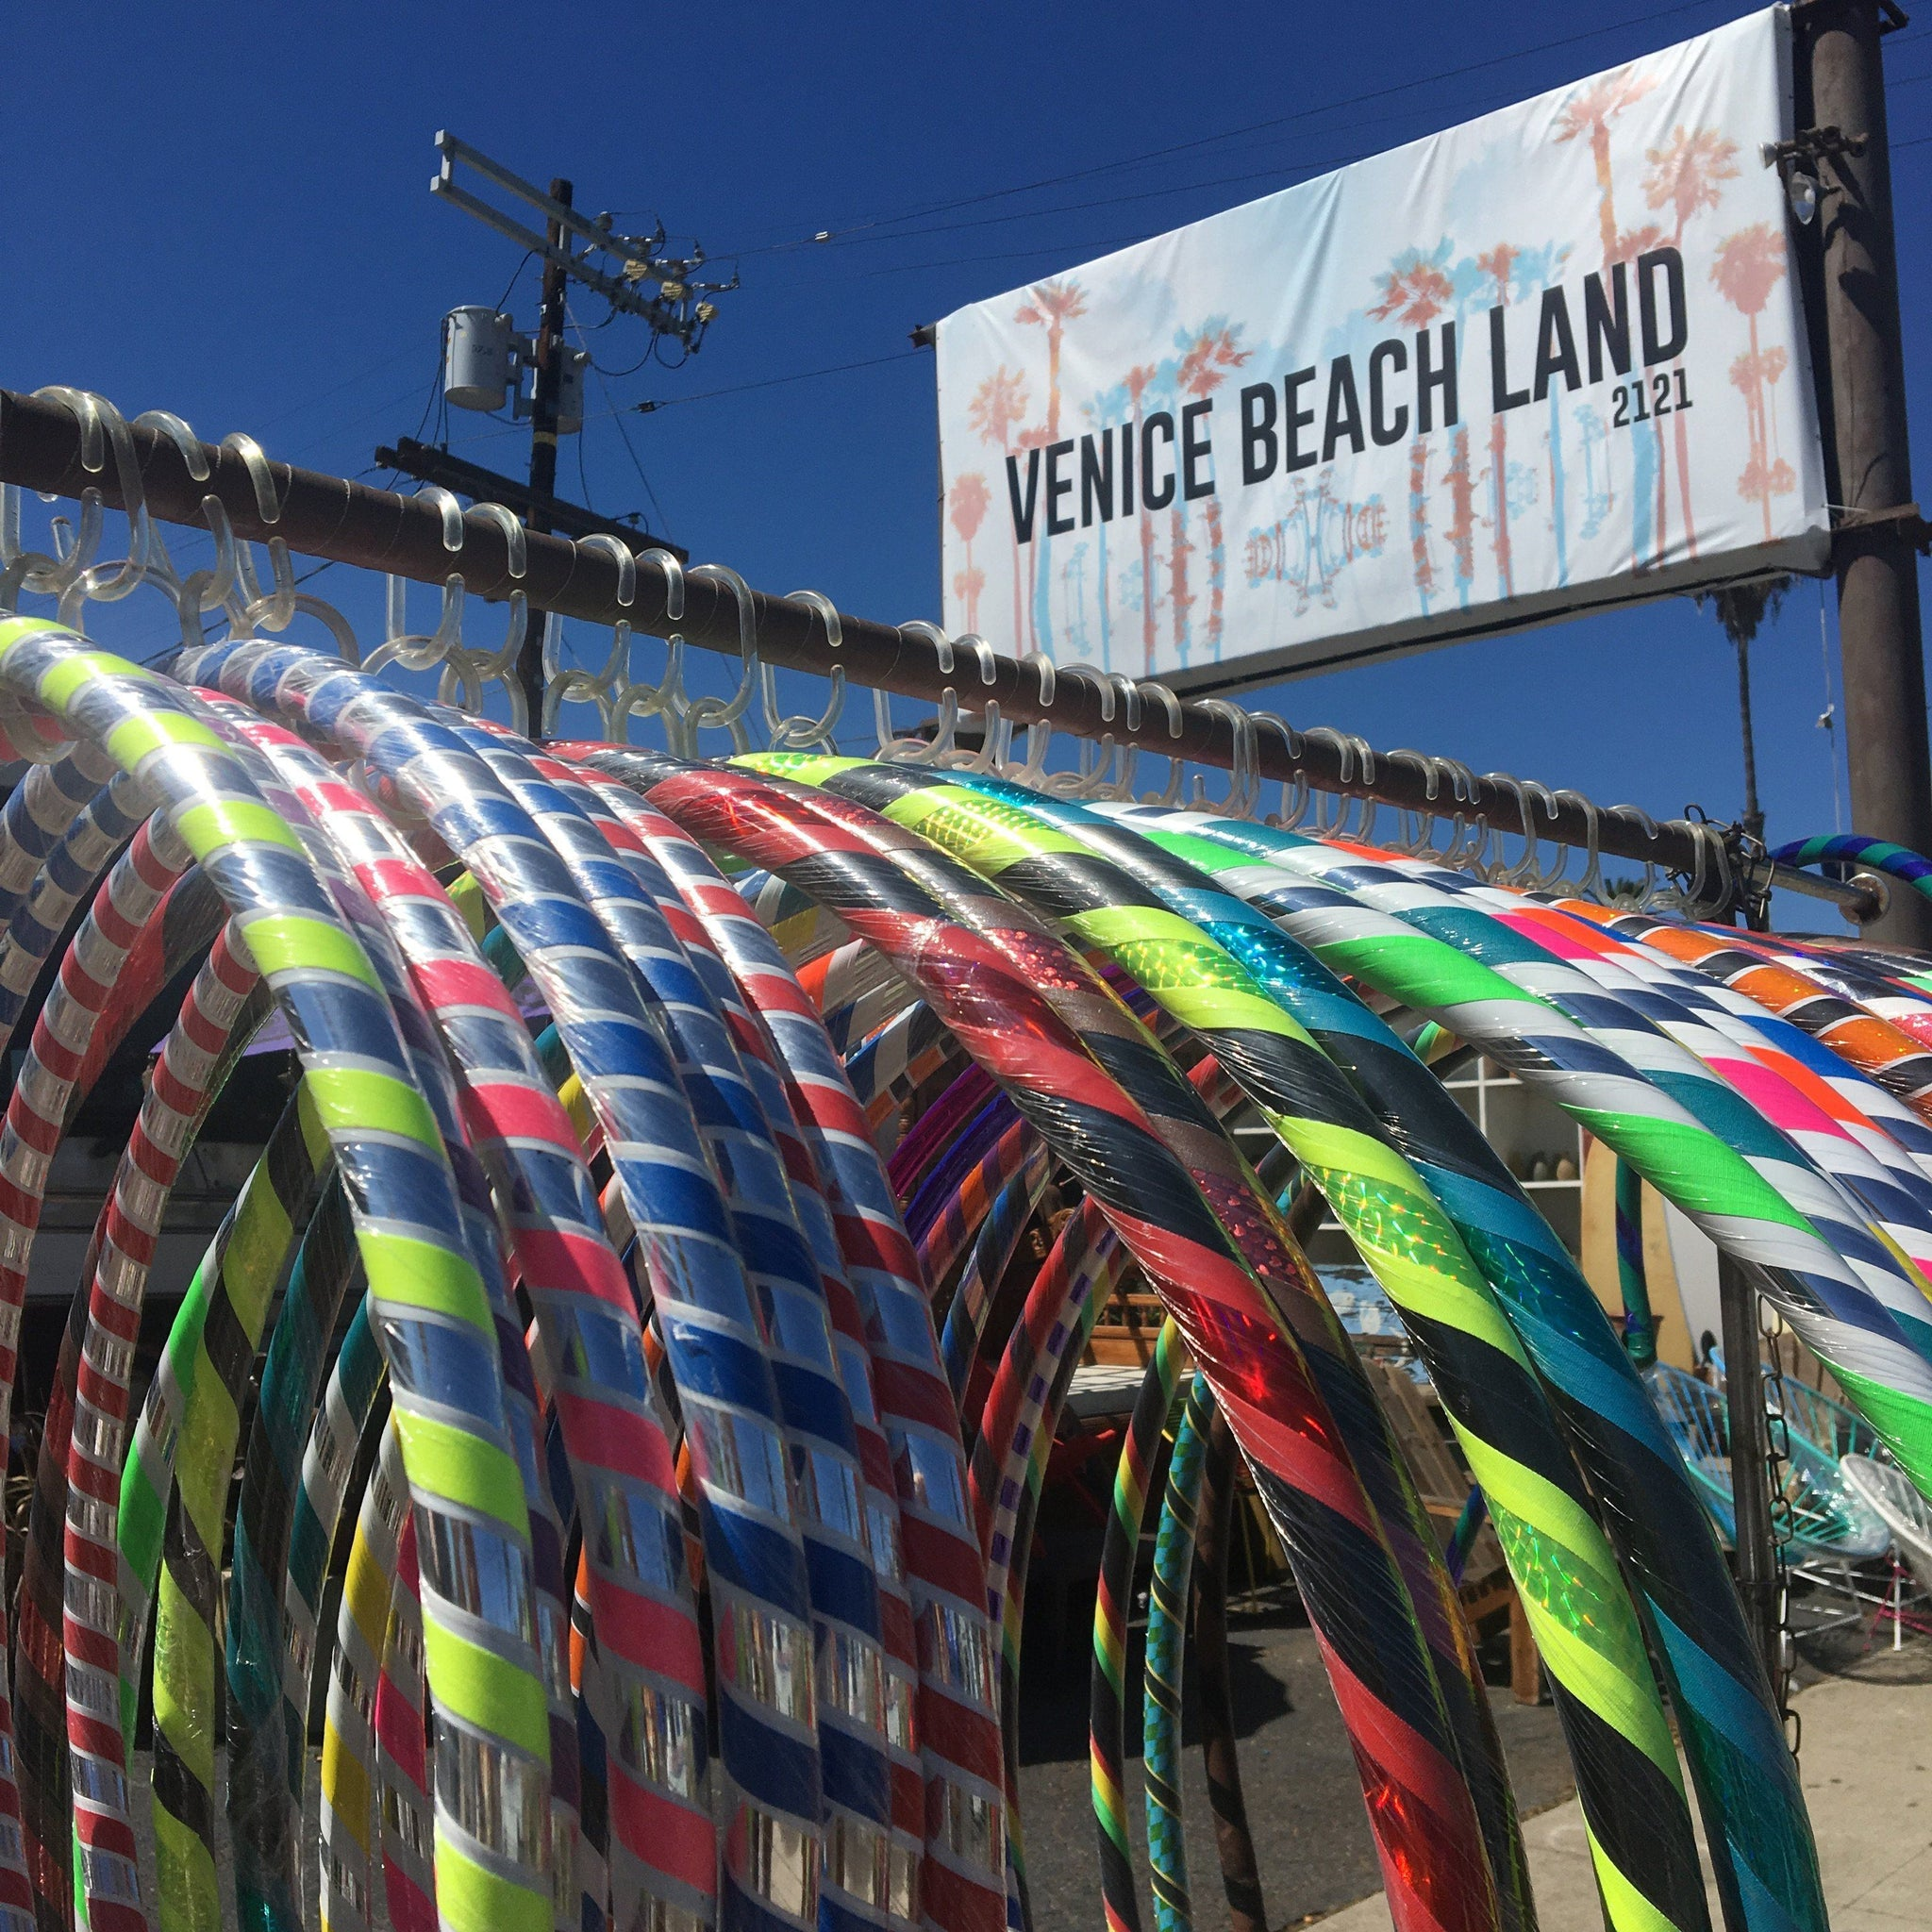 Venice Beach Land Collection